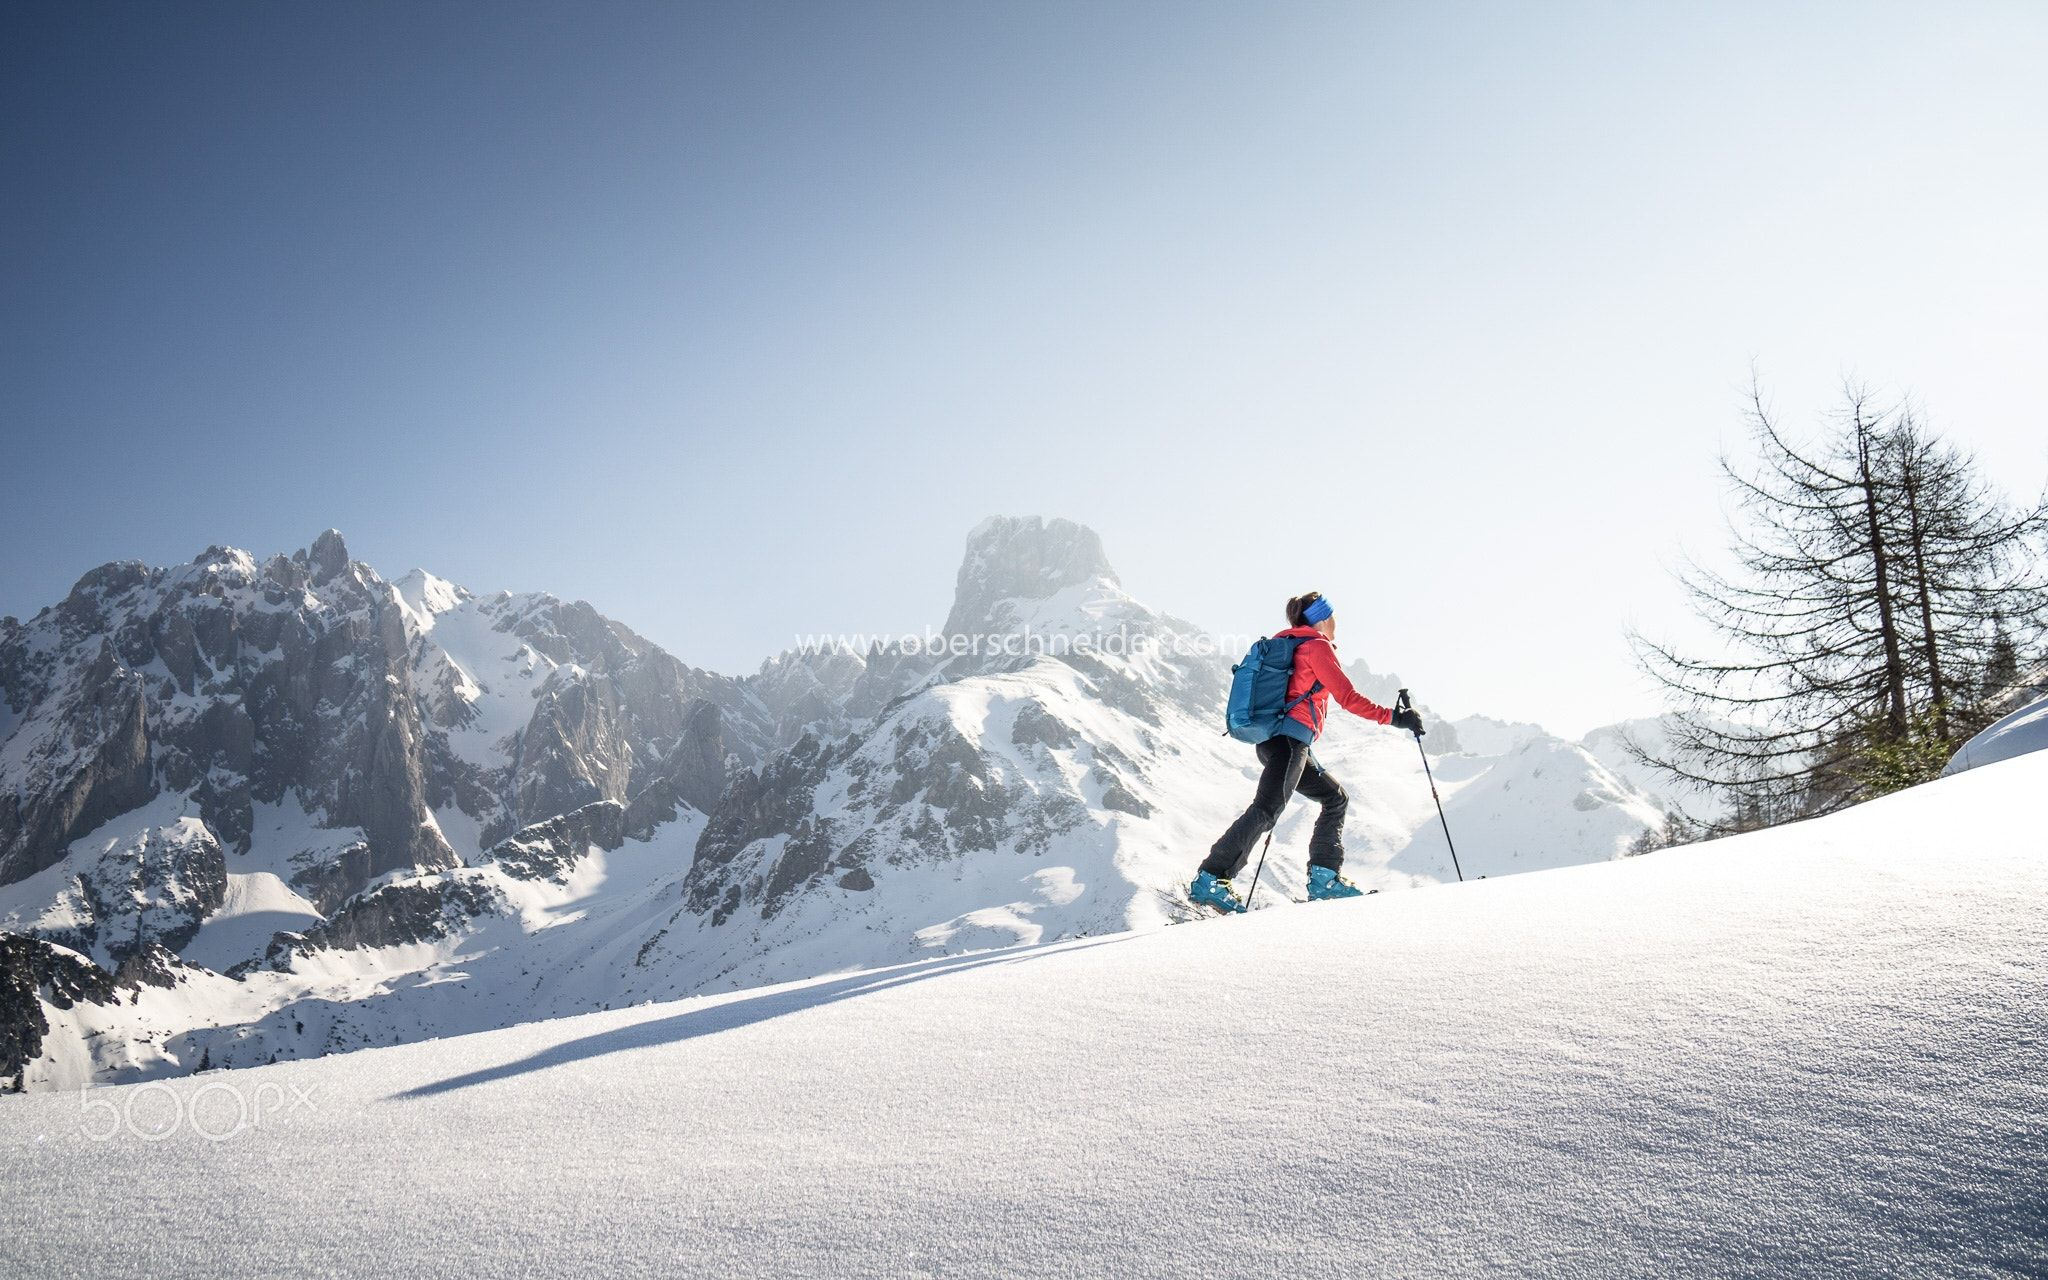 Ski Touring In The Austrian Alps Backcountry Ski Touring In The Austrian Alps Image Available For Licensing Order Prints Of My Images Online Shipping Worl